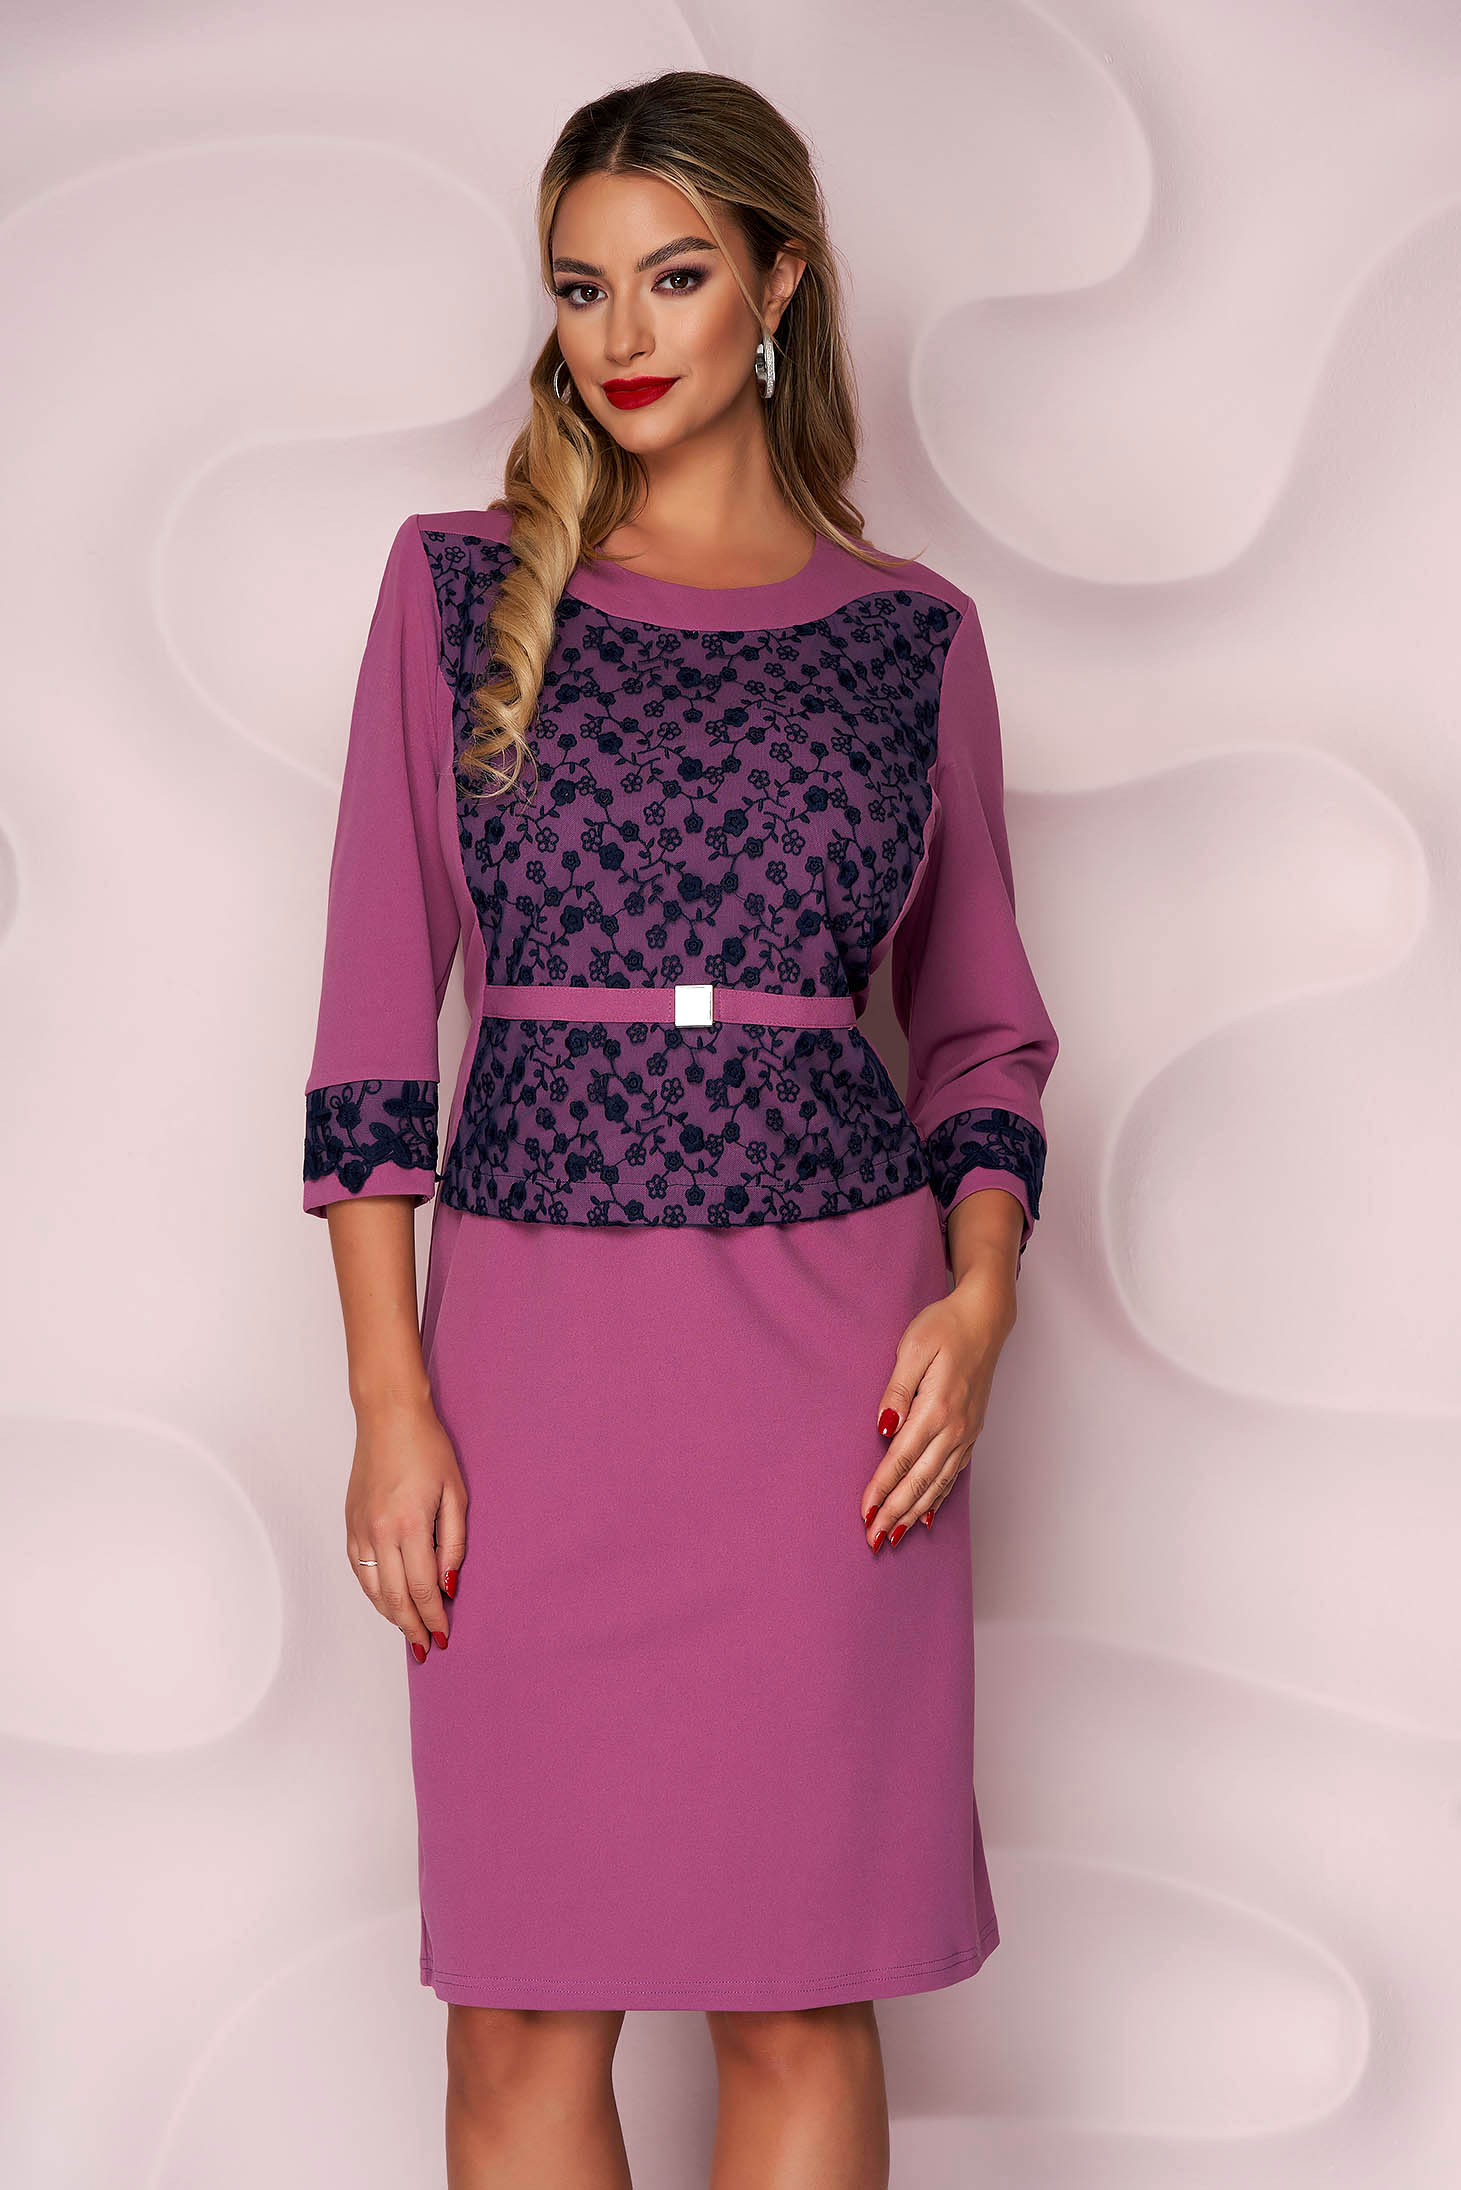 Purple dress midi pencil with lace details from elastic fabric thin fabric elegant